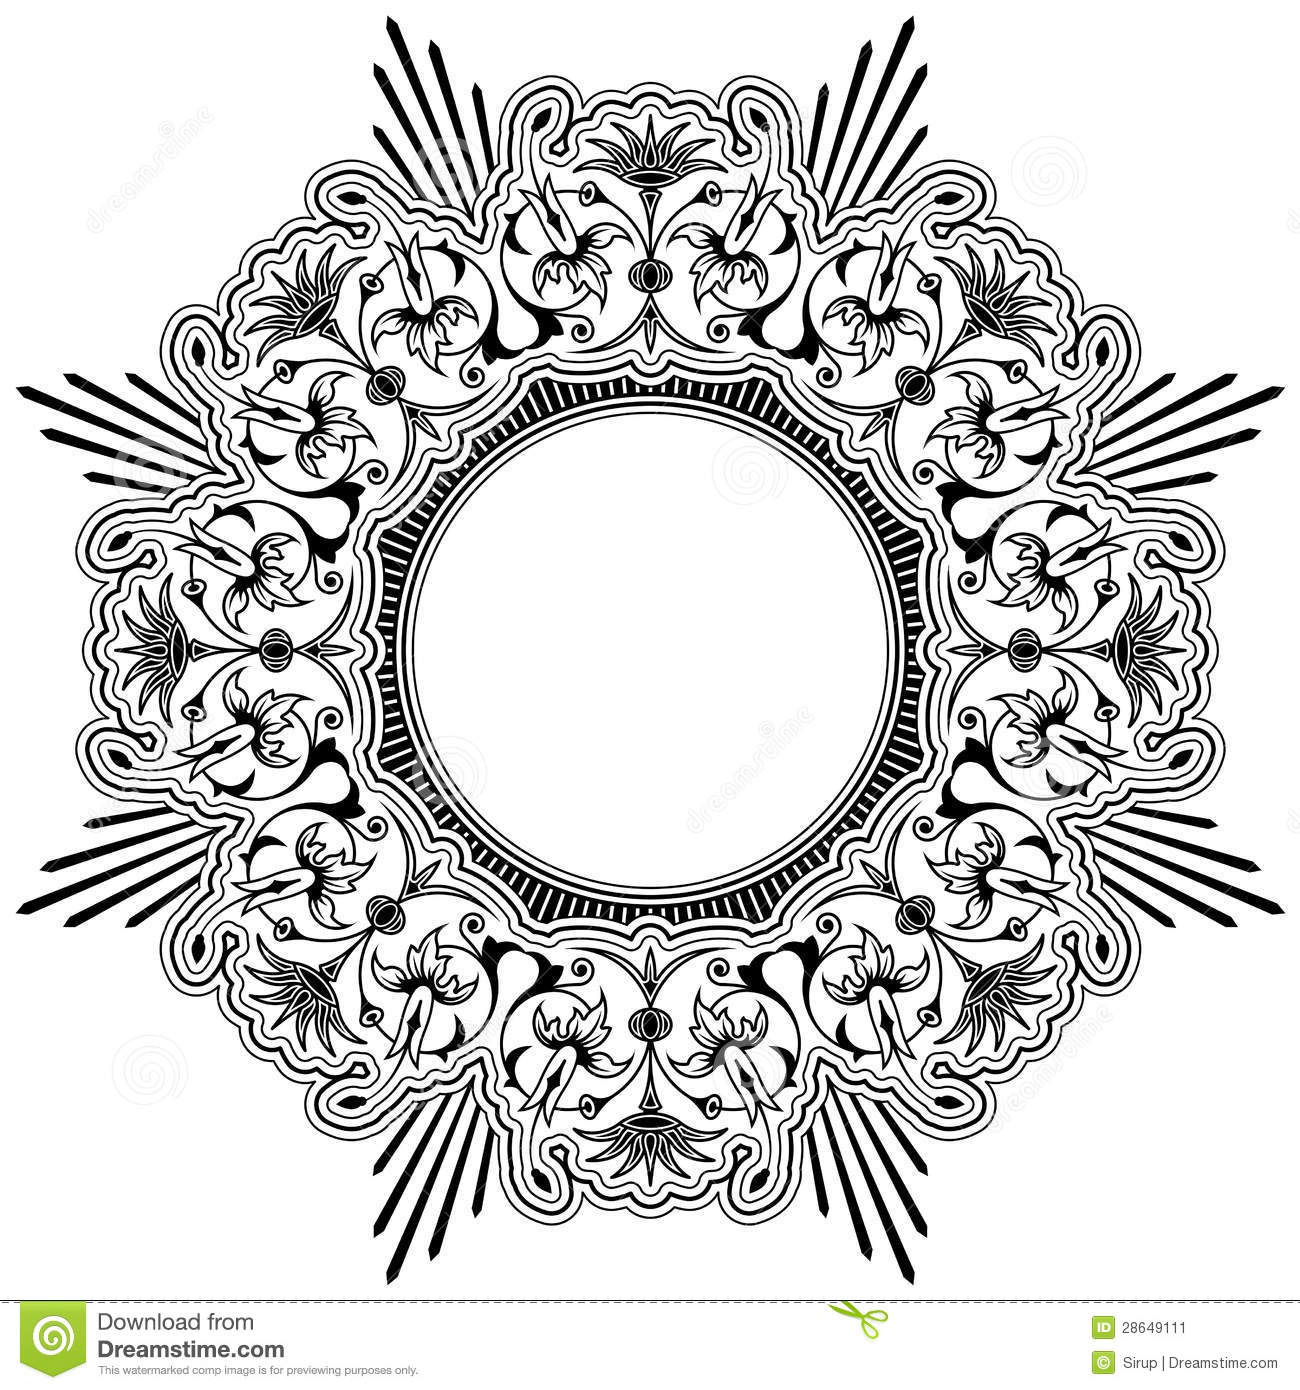 Round floral calligraphic border stock image